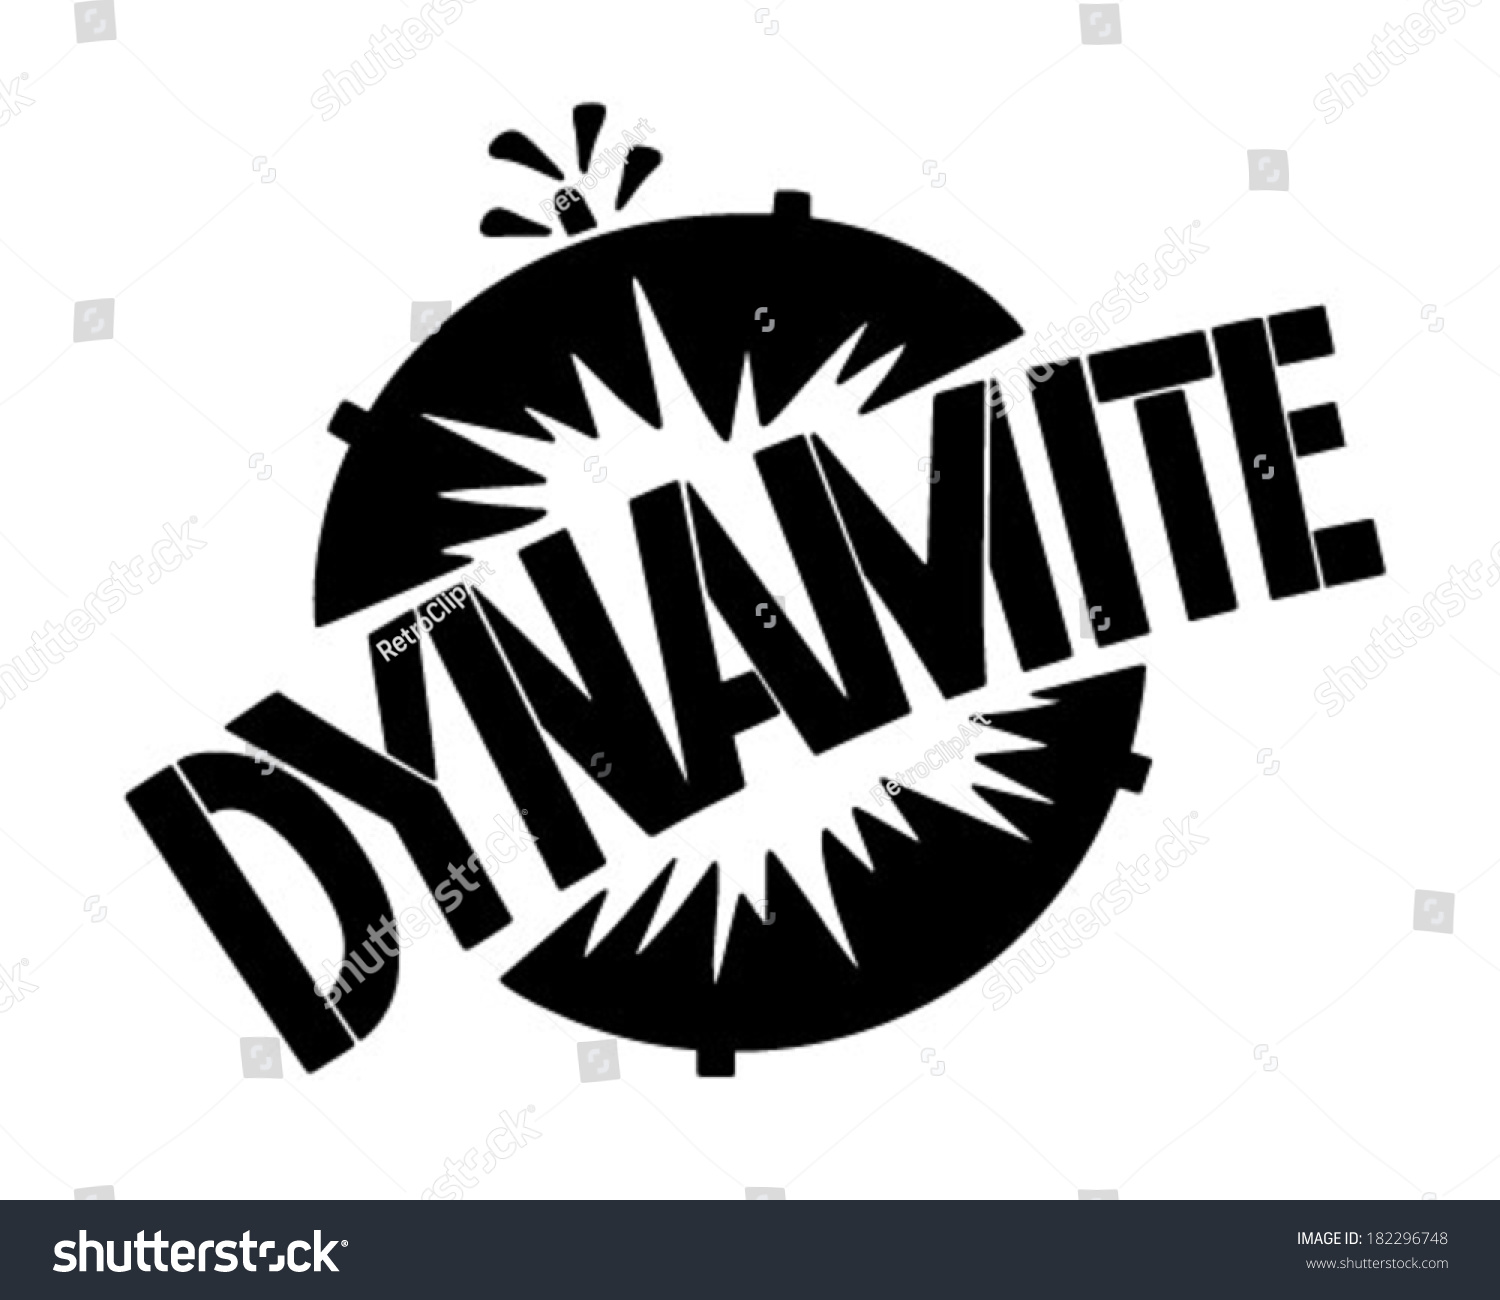 Clip Art Dynamite Clipart dynamite banner retro clip art illustration stock vector 182296748 illustration